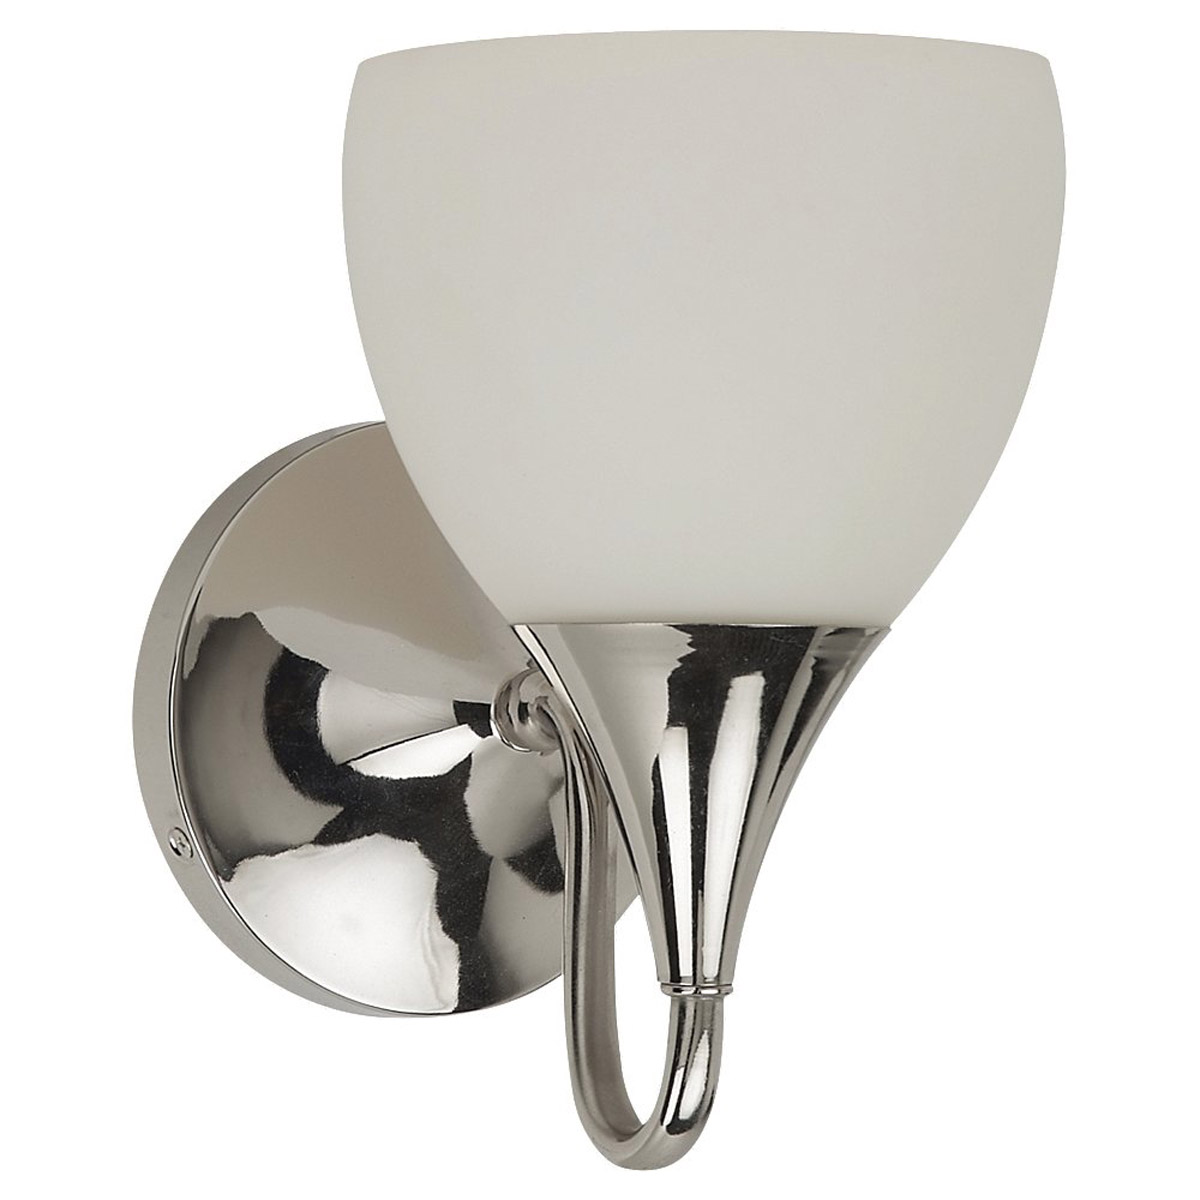 Sea Gull 44971-841 Solana 1 Light 6 inch Polished Nickel Bath Vanity Wall Light in Standard photo